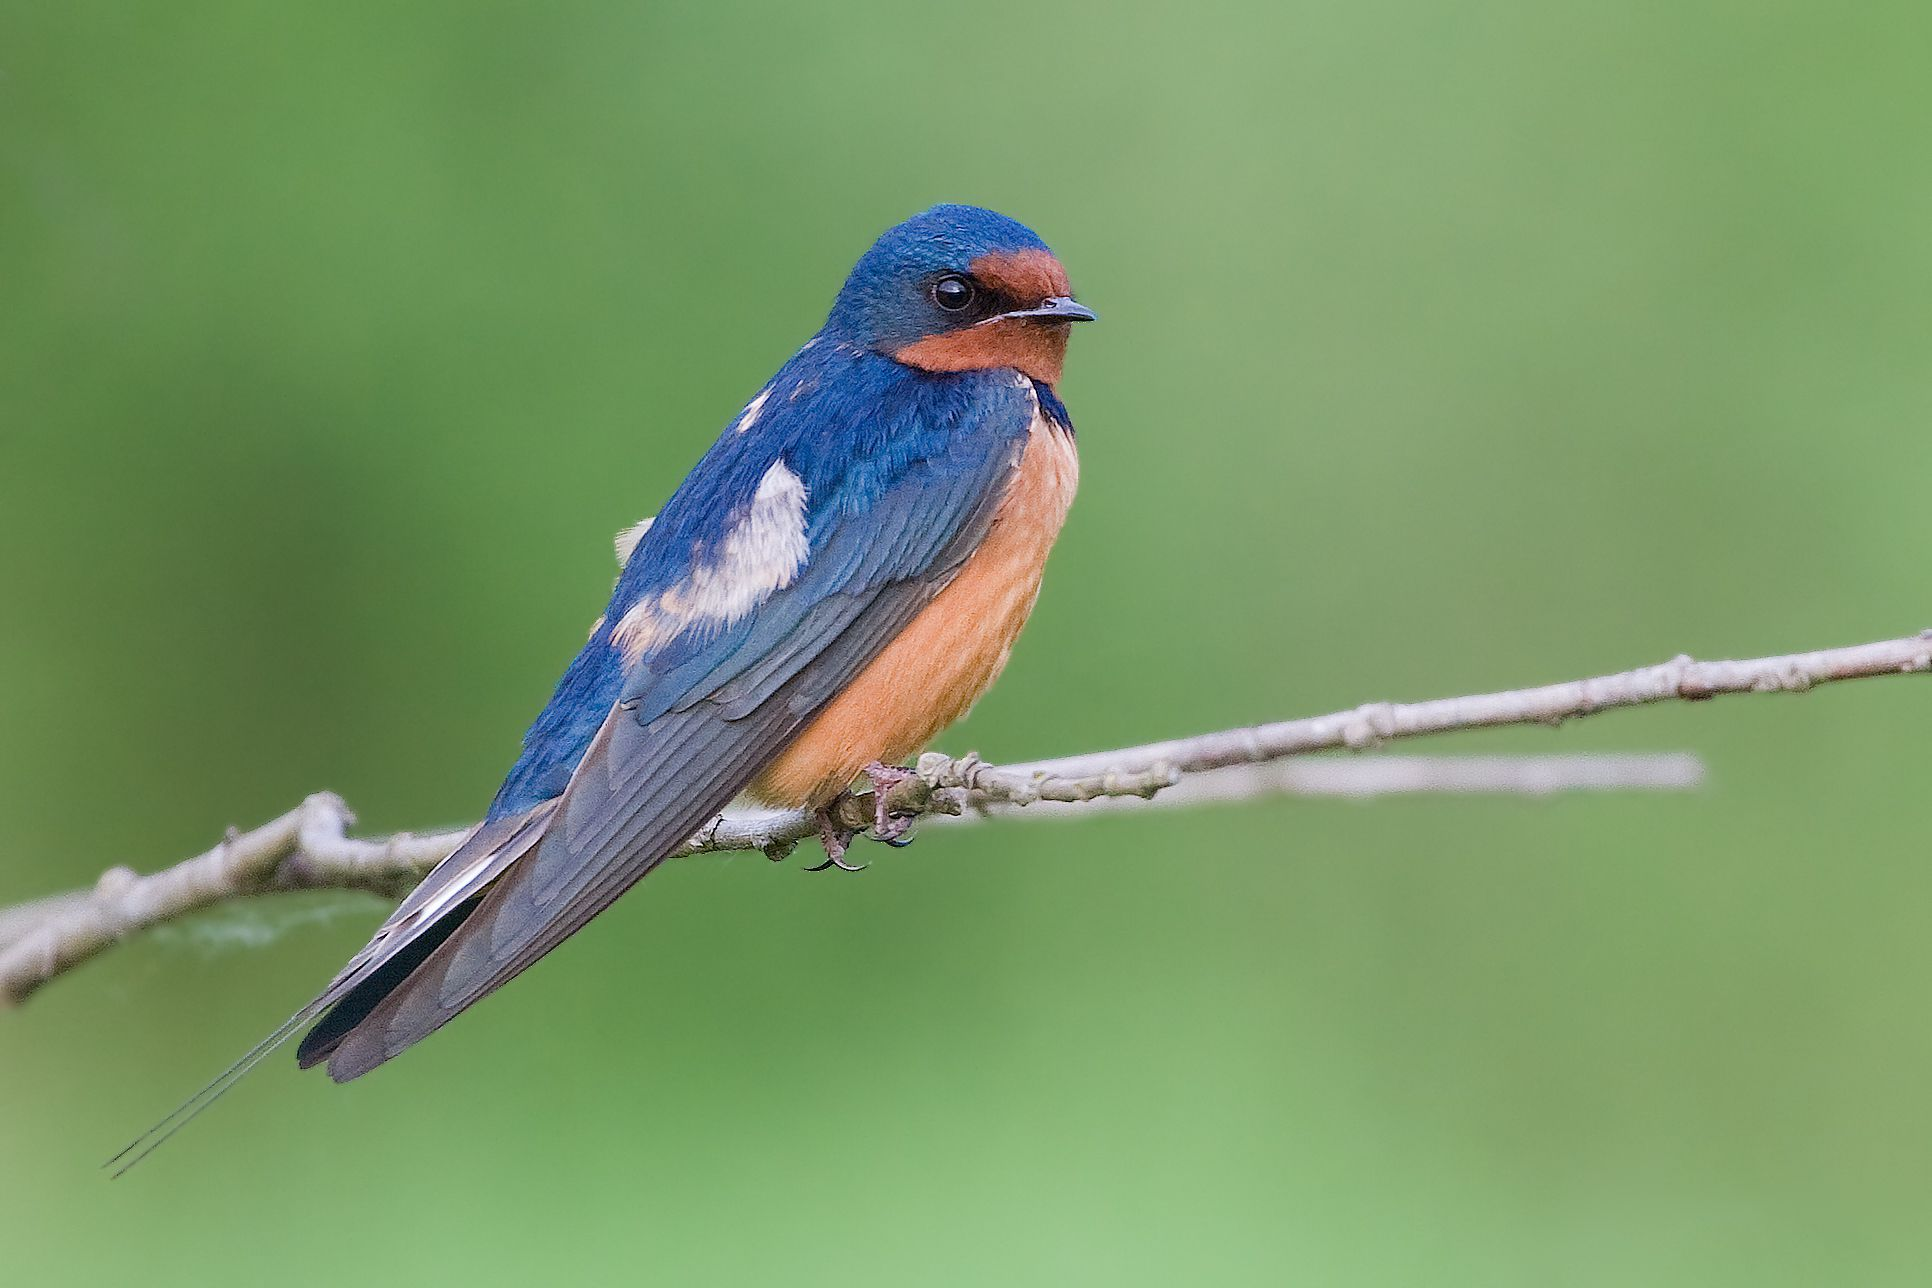 Barn swallow migrates